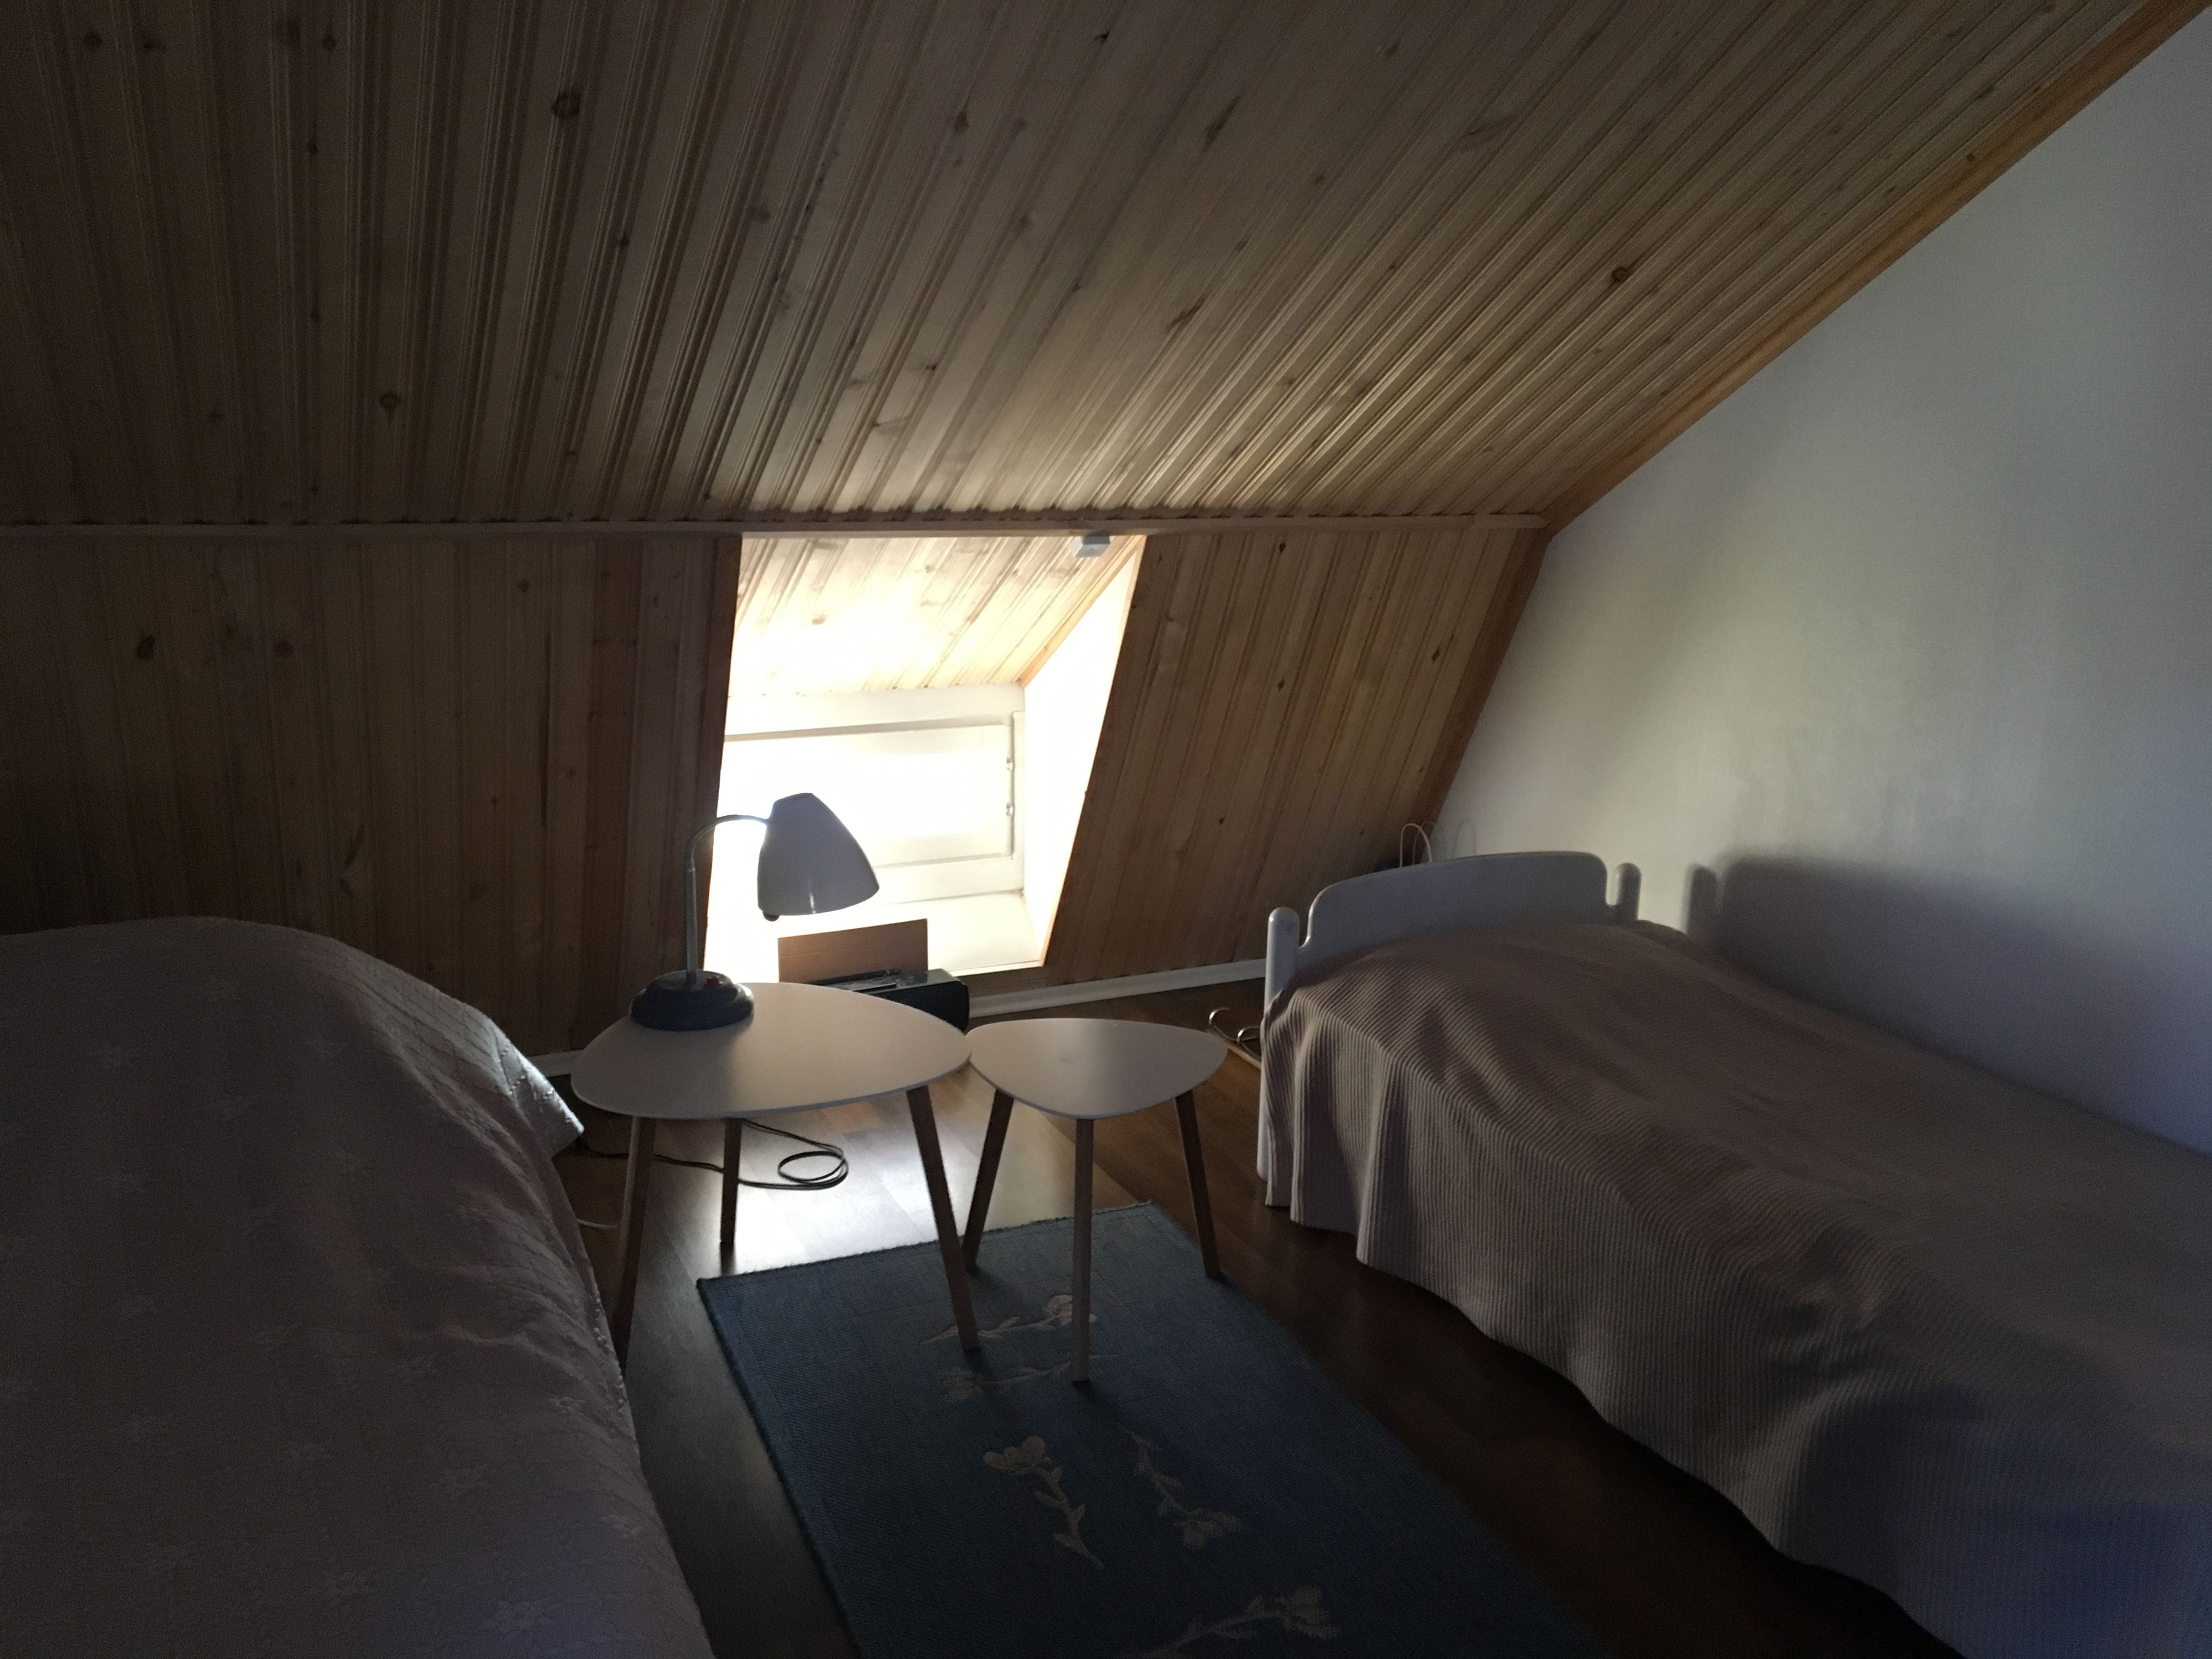 Private accommodation at Koppinen house